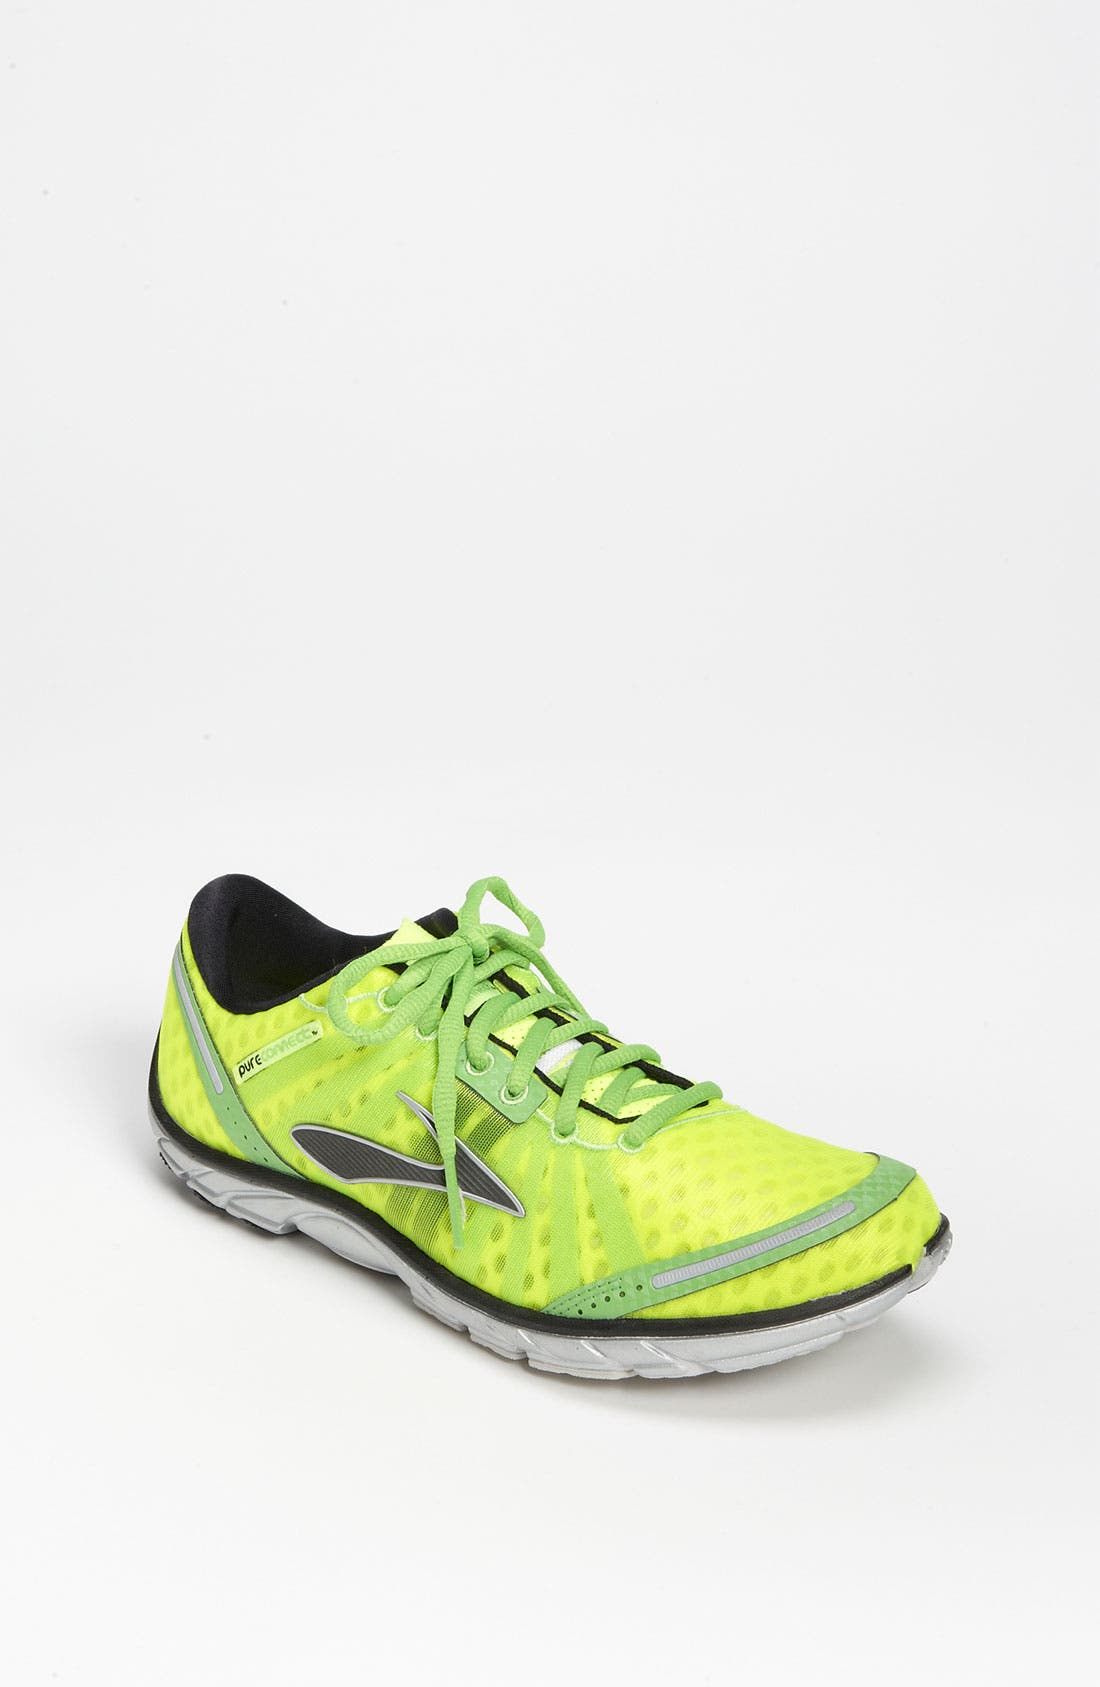 Main Image - Brooks 'PureConnect' Running Shoe (Women) (Regular Retail Price: $89.95)